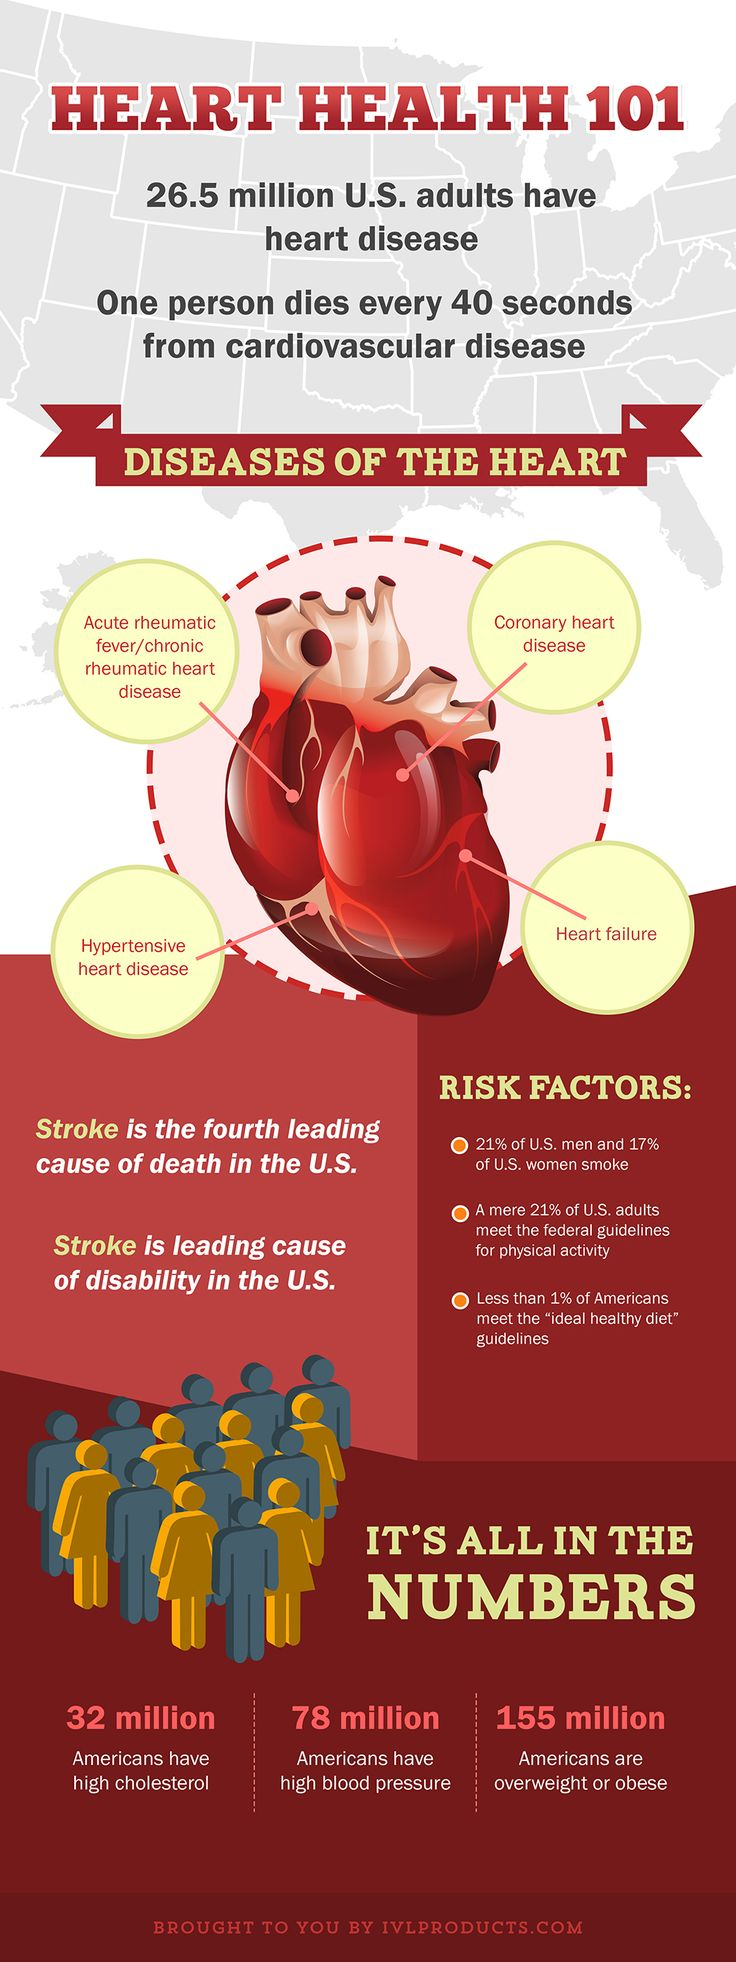 Heart Disease Prevention Facts - Learn more helpful tips on how to cure heartburn and acid reflux naturally at HeartSensei.com